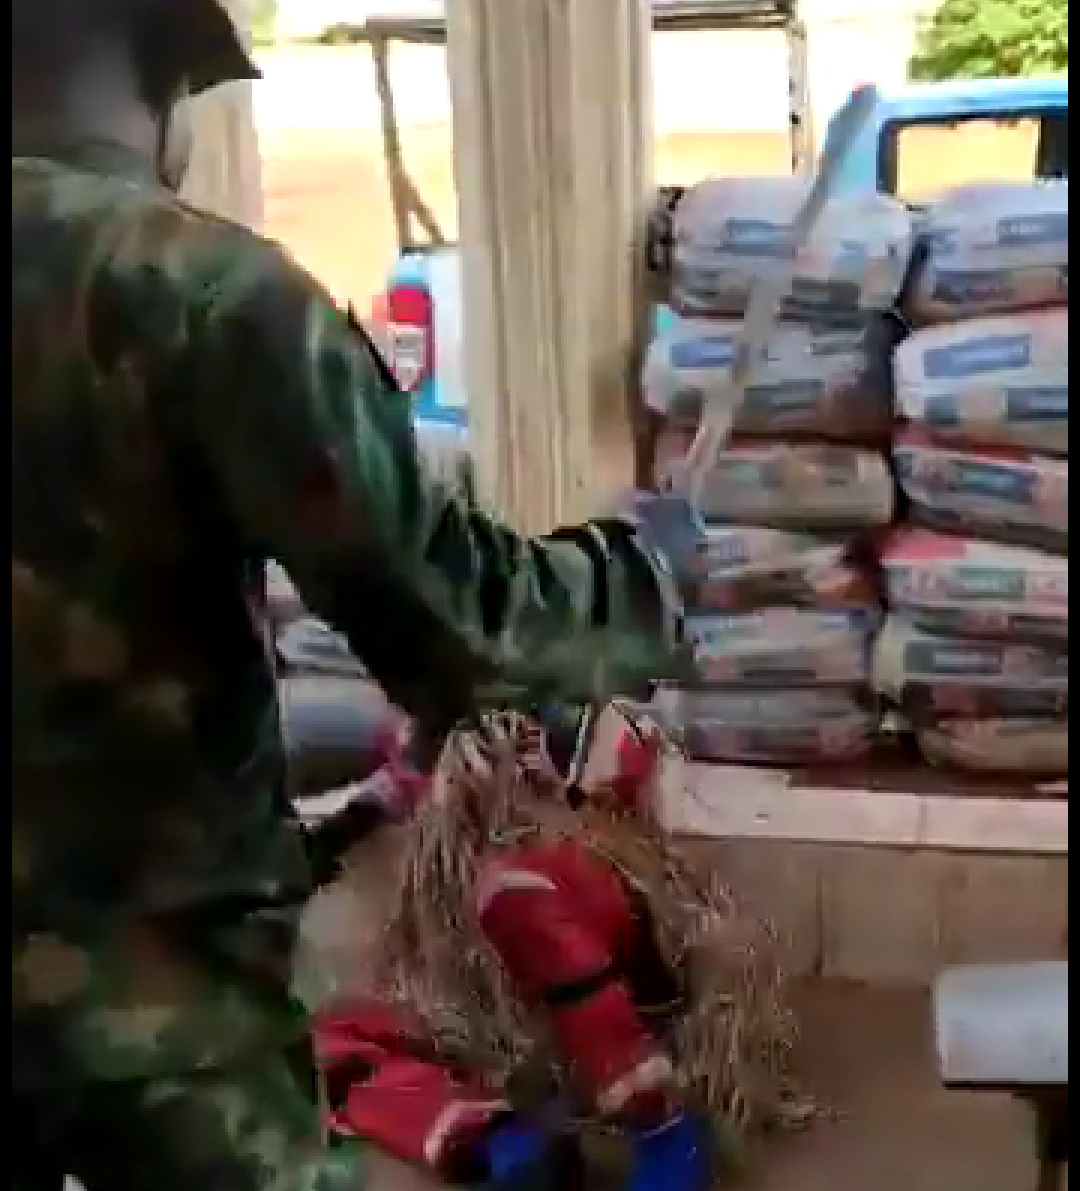 A Soldier beating up a masquerade with a stick